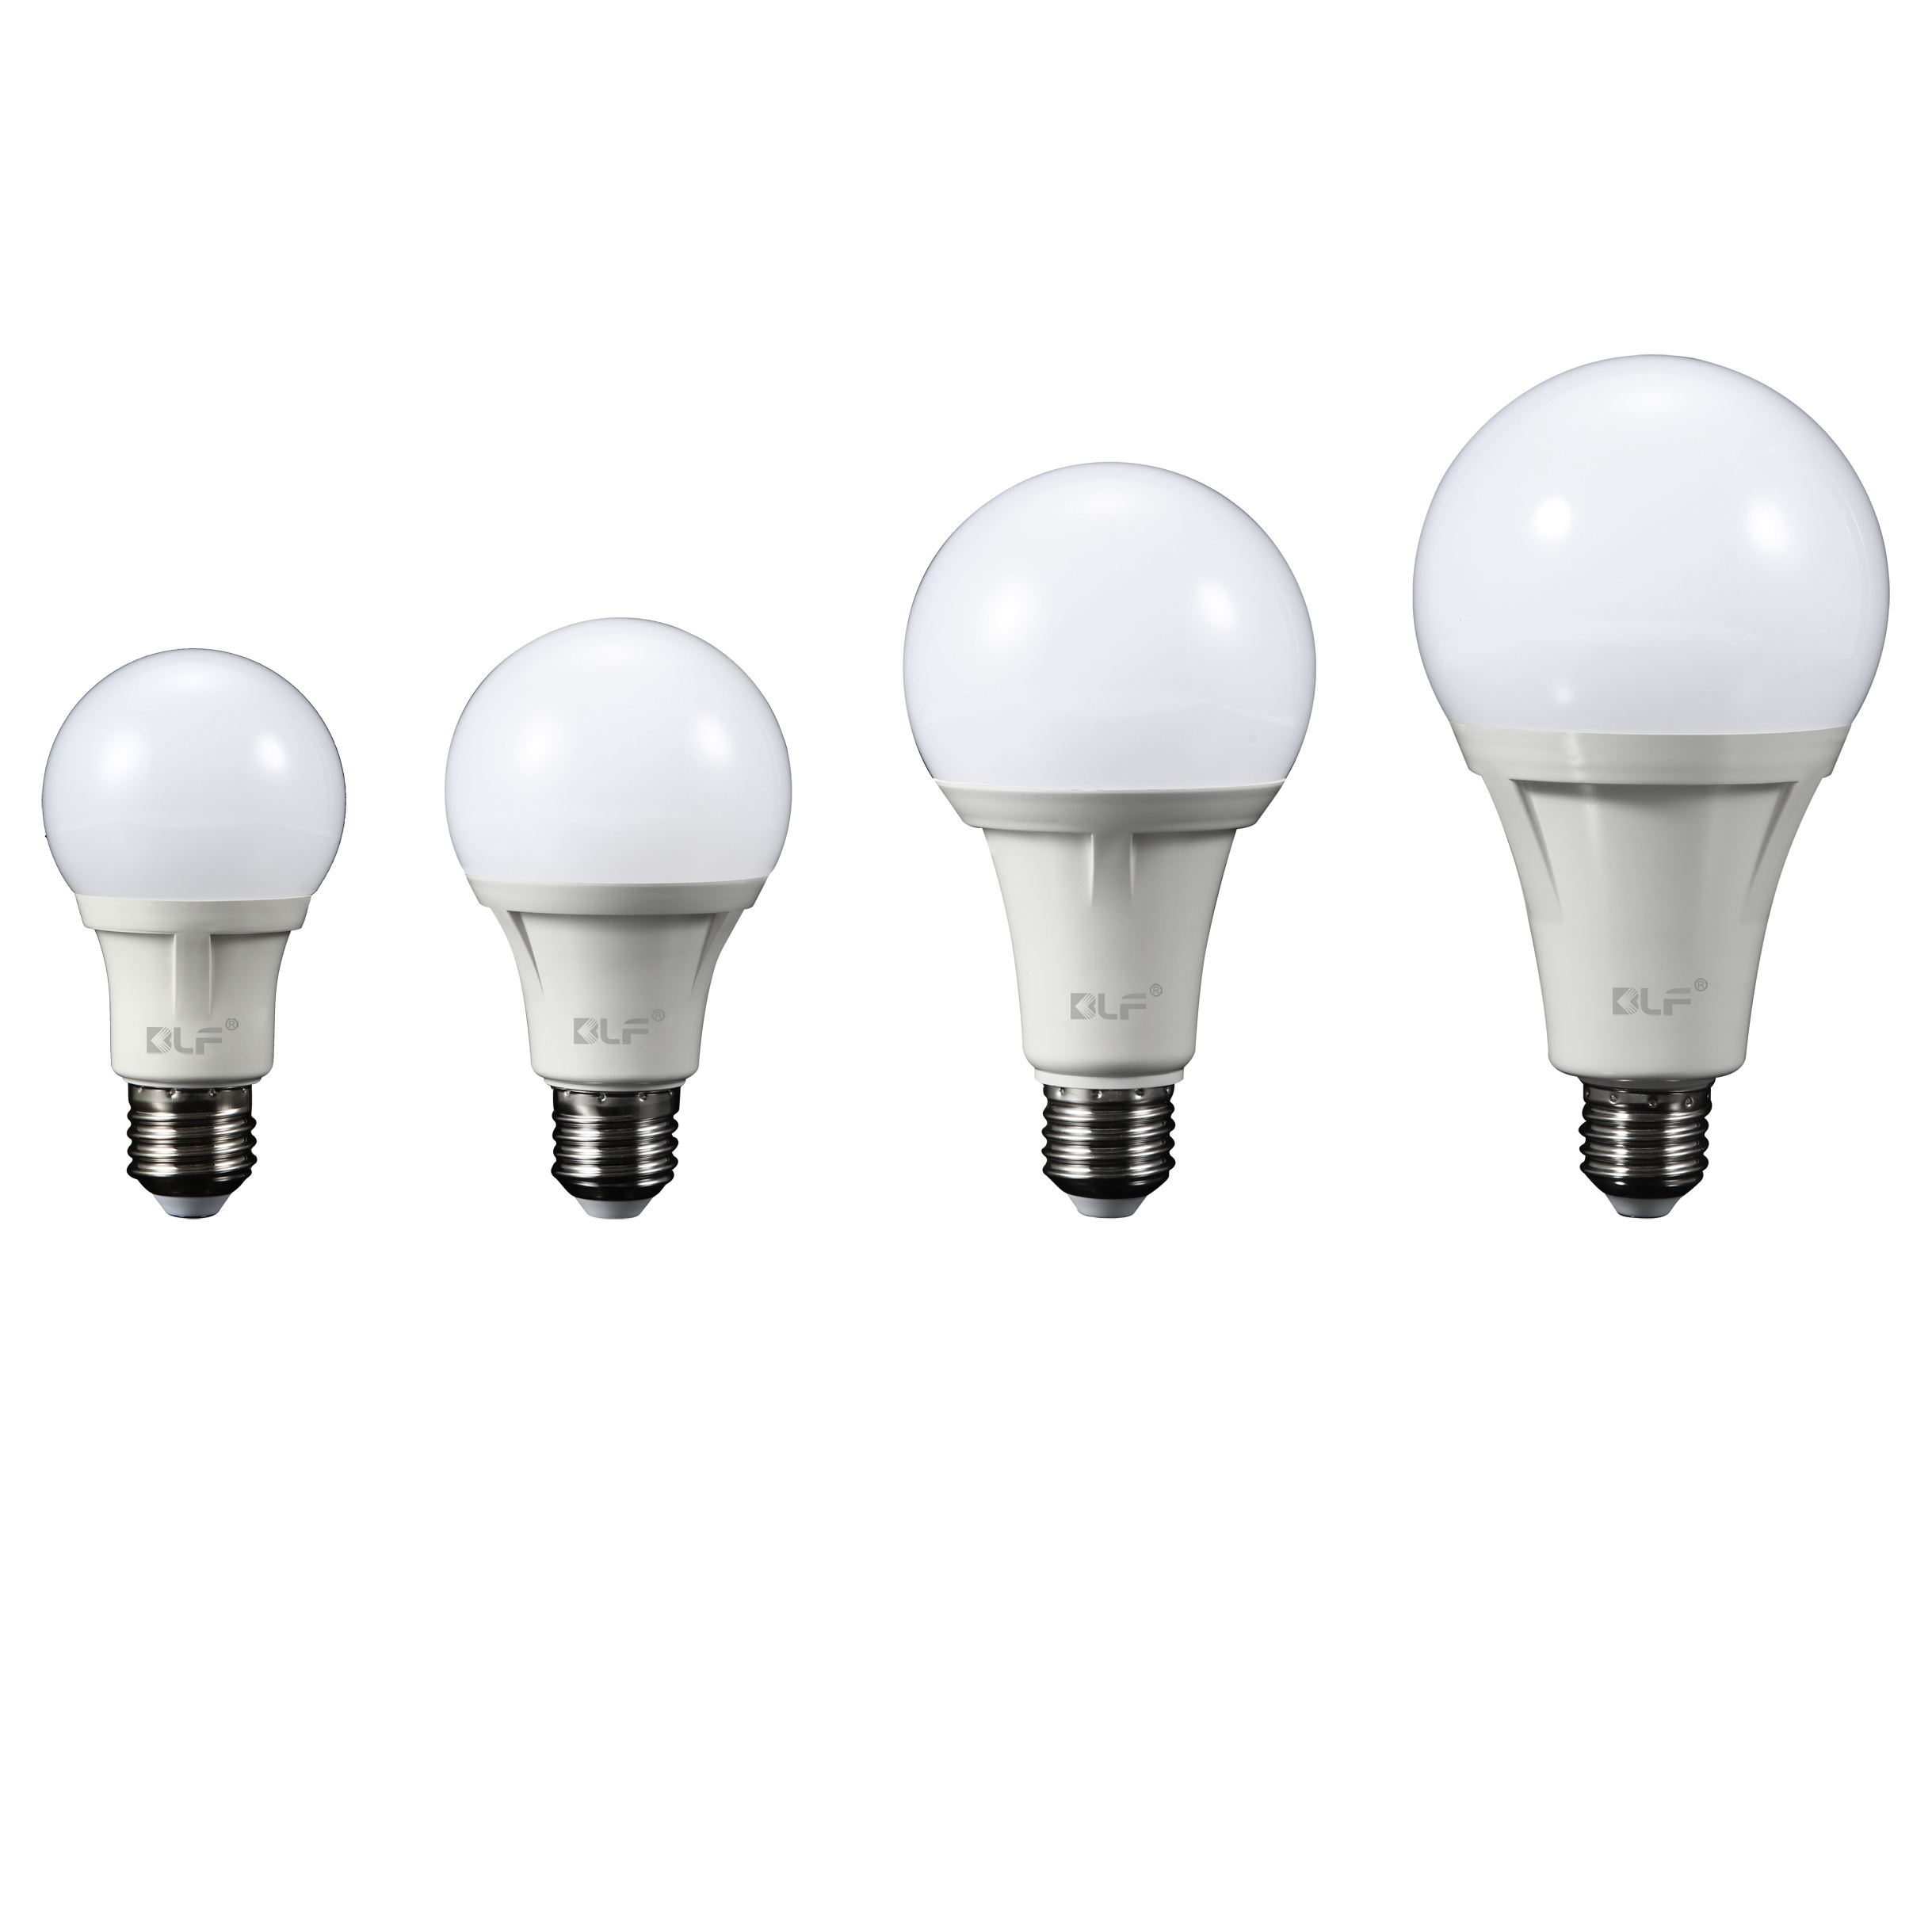 LED Bulb Raw Material 3W 5W 7W 9W 12W 15W 18W Self moulded A60 Bulb SKD lighting for Indoor Lighting